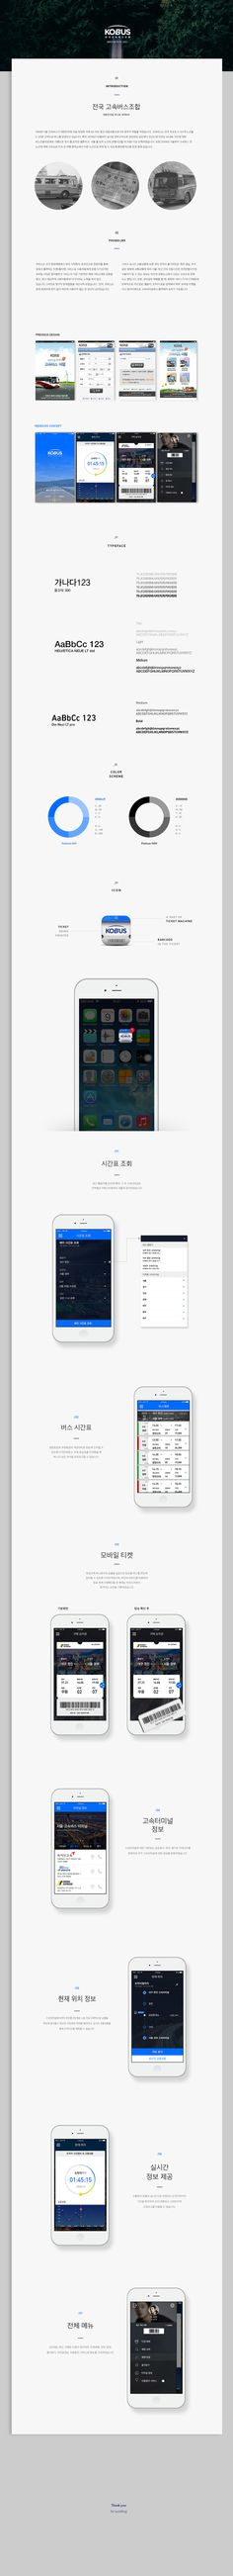 Kobus Mobile Application Redesign - UI/UX